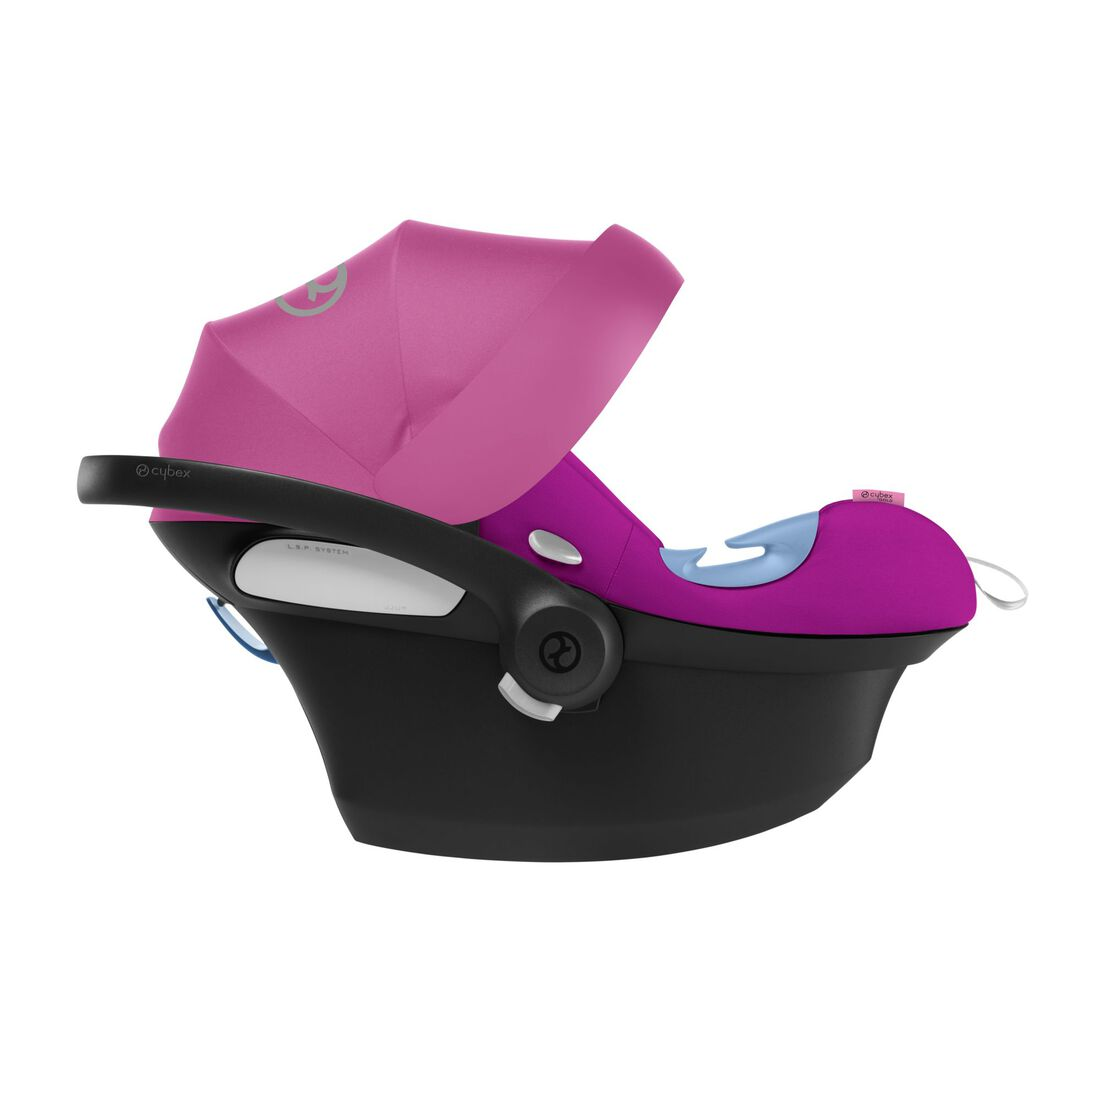 CYBEX Aton M i-Size - Magnolia Pink in Magnolia Pink large image number 5